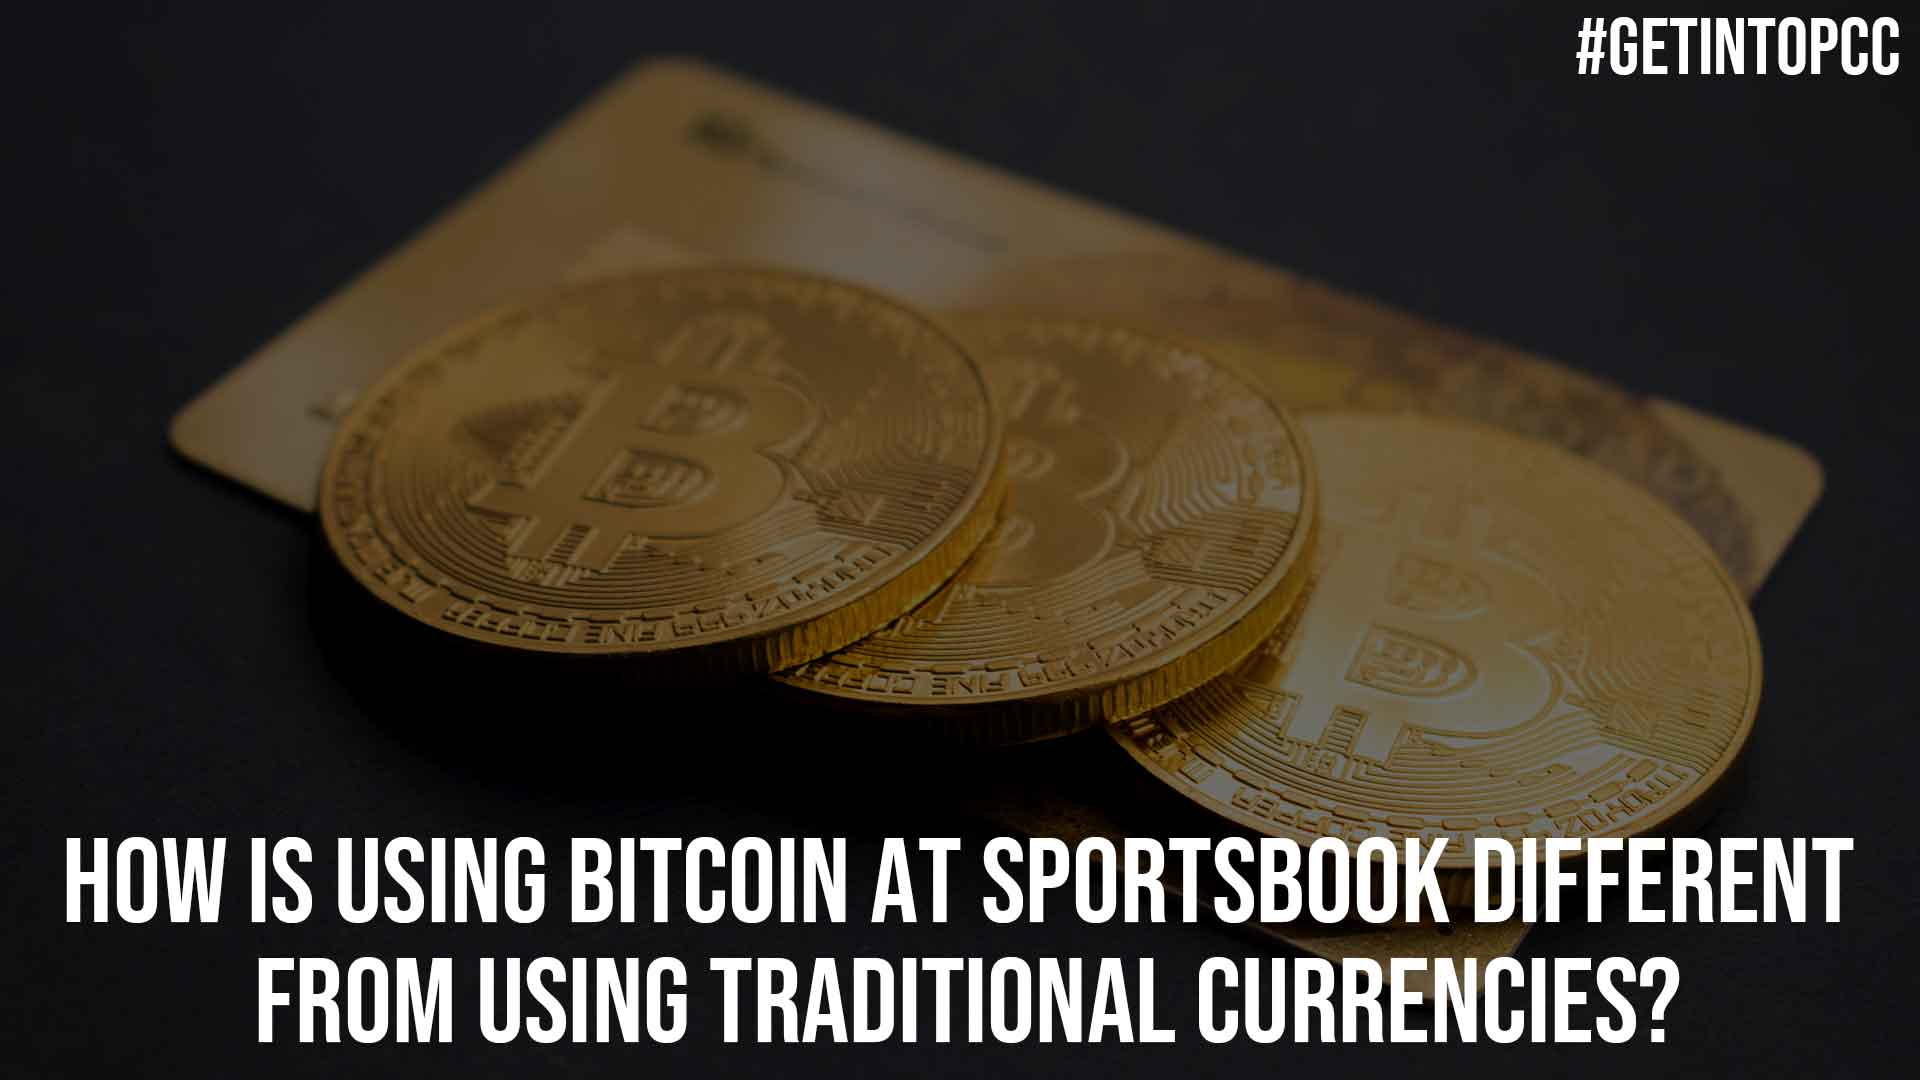 How is Using Bitcoin at Sportsbook Different from Using Traditional Currencies